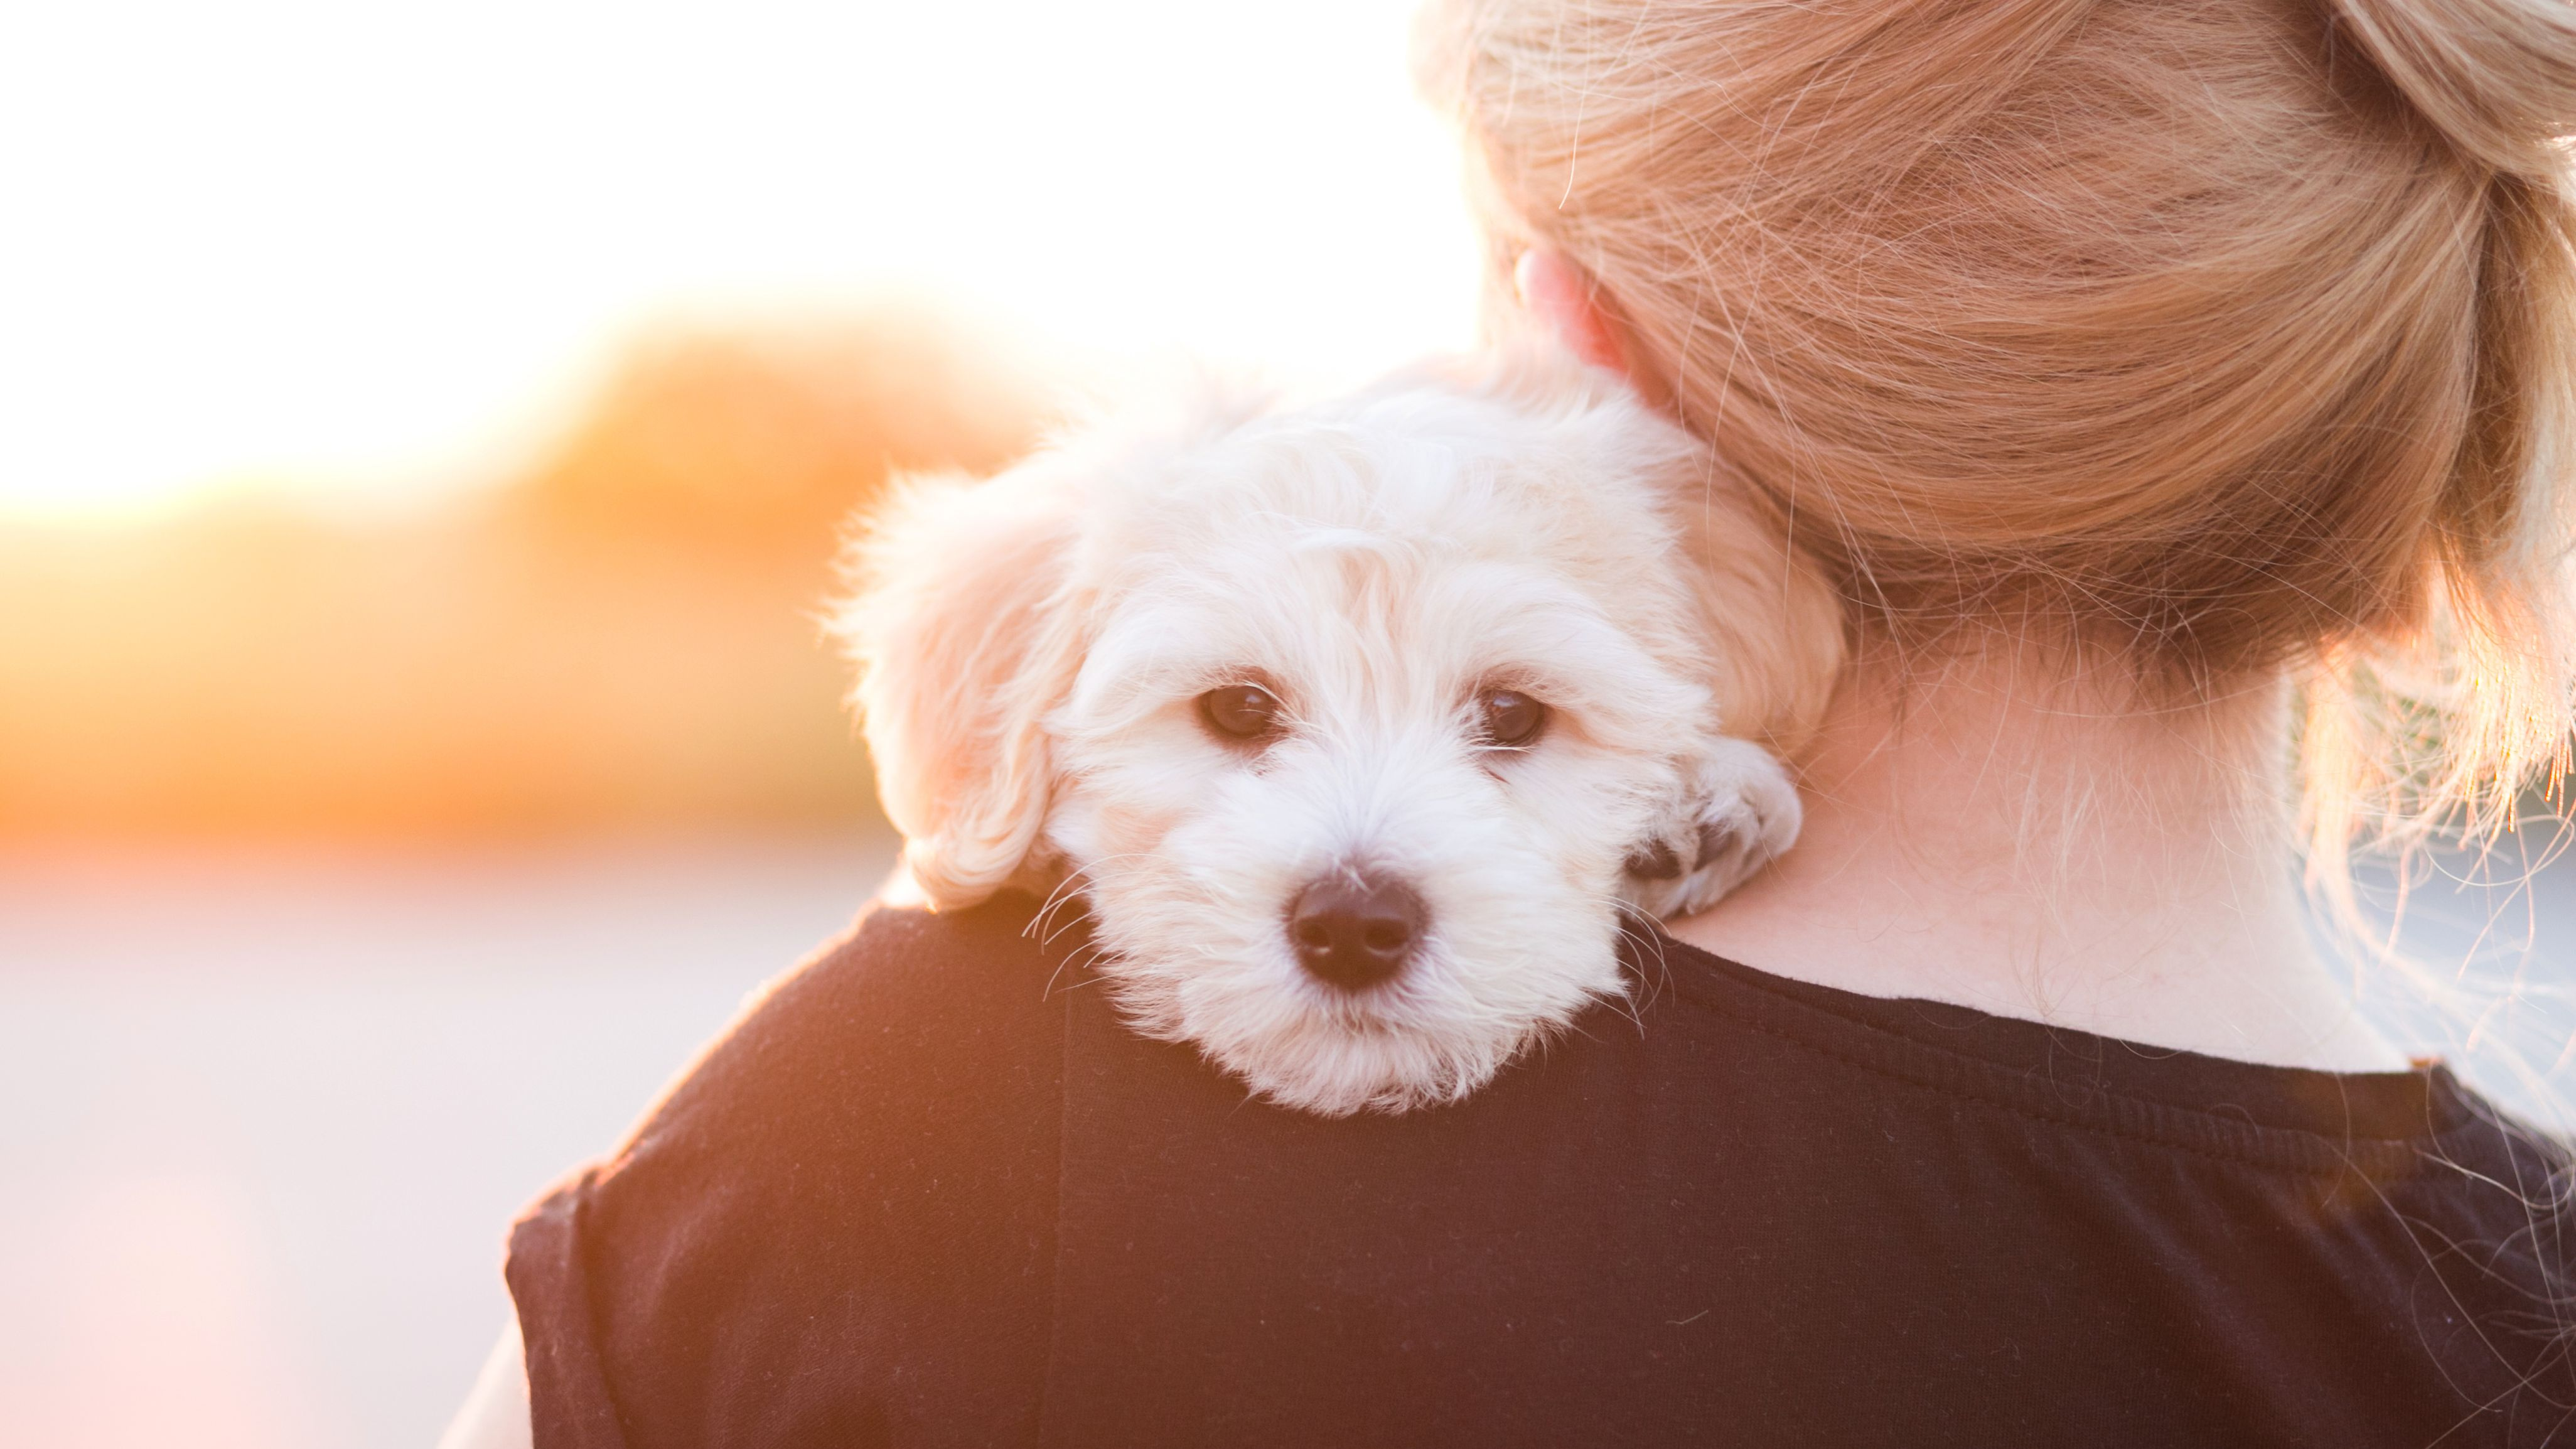 Dogs and Phobias: Signs of Fear in Dogs